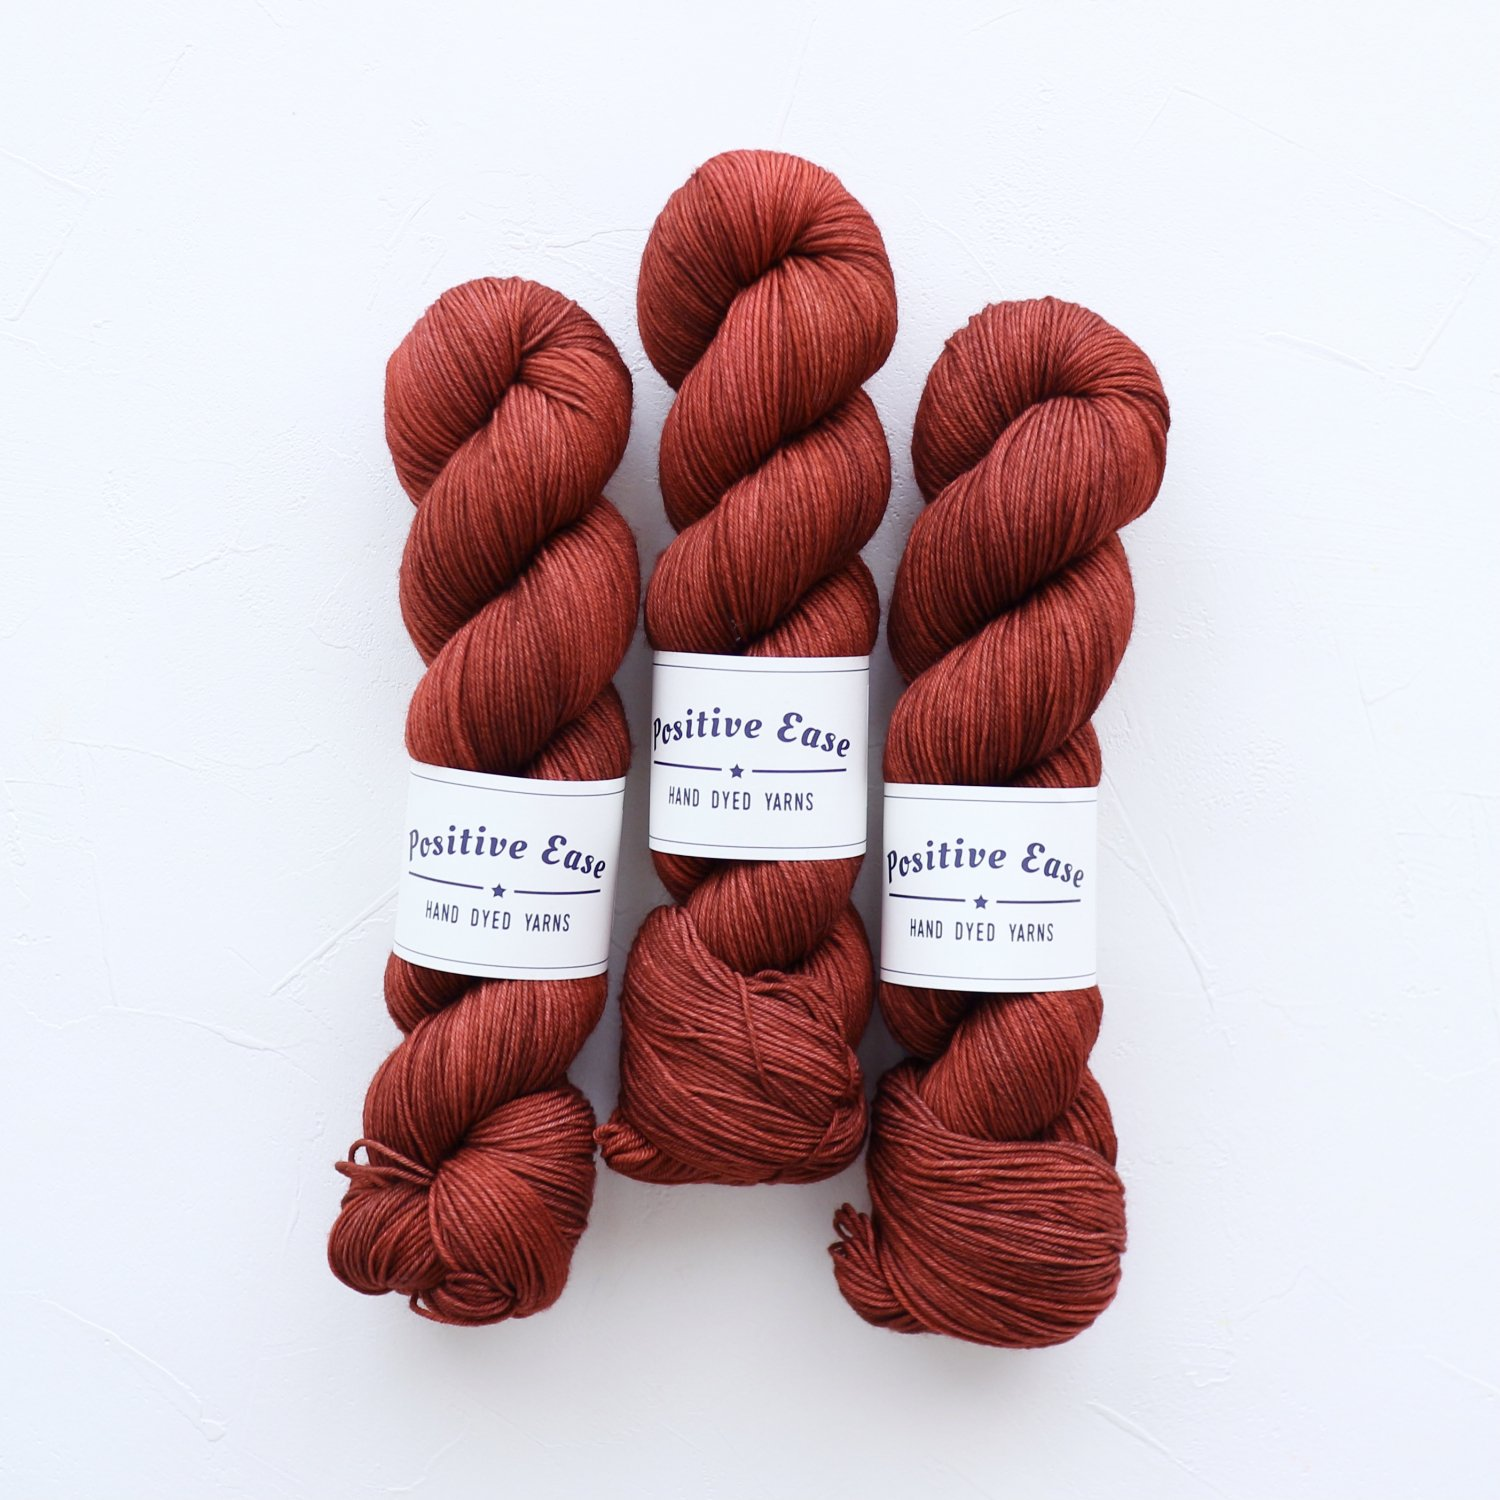 【Positive Ease】<br>Pure Merino<br>Greta